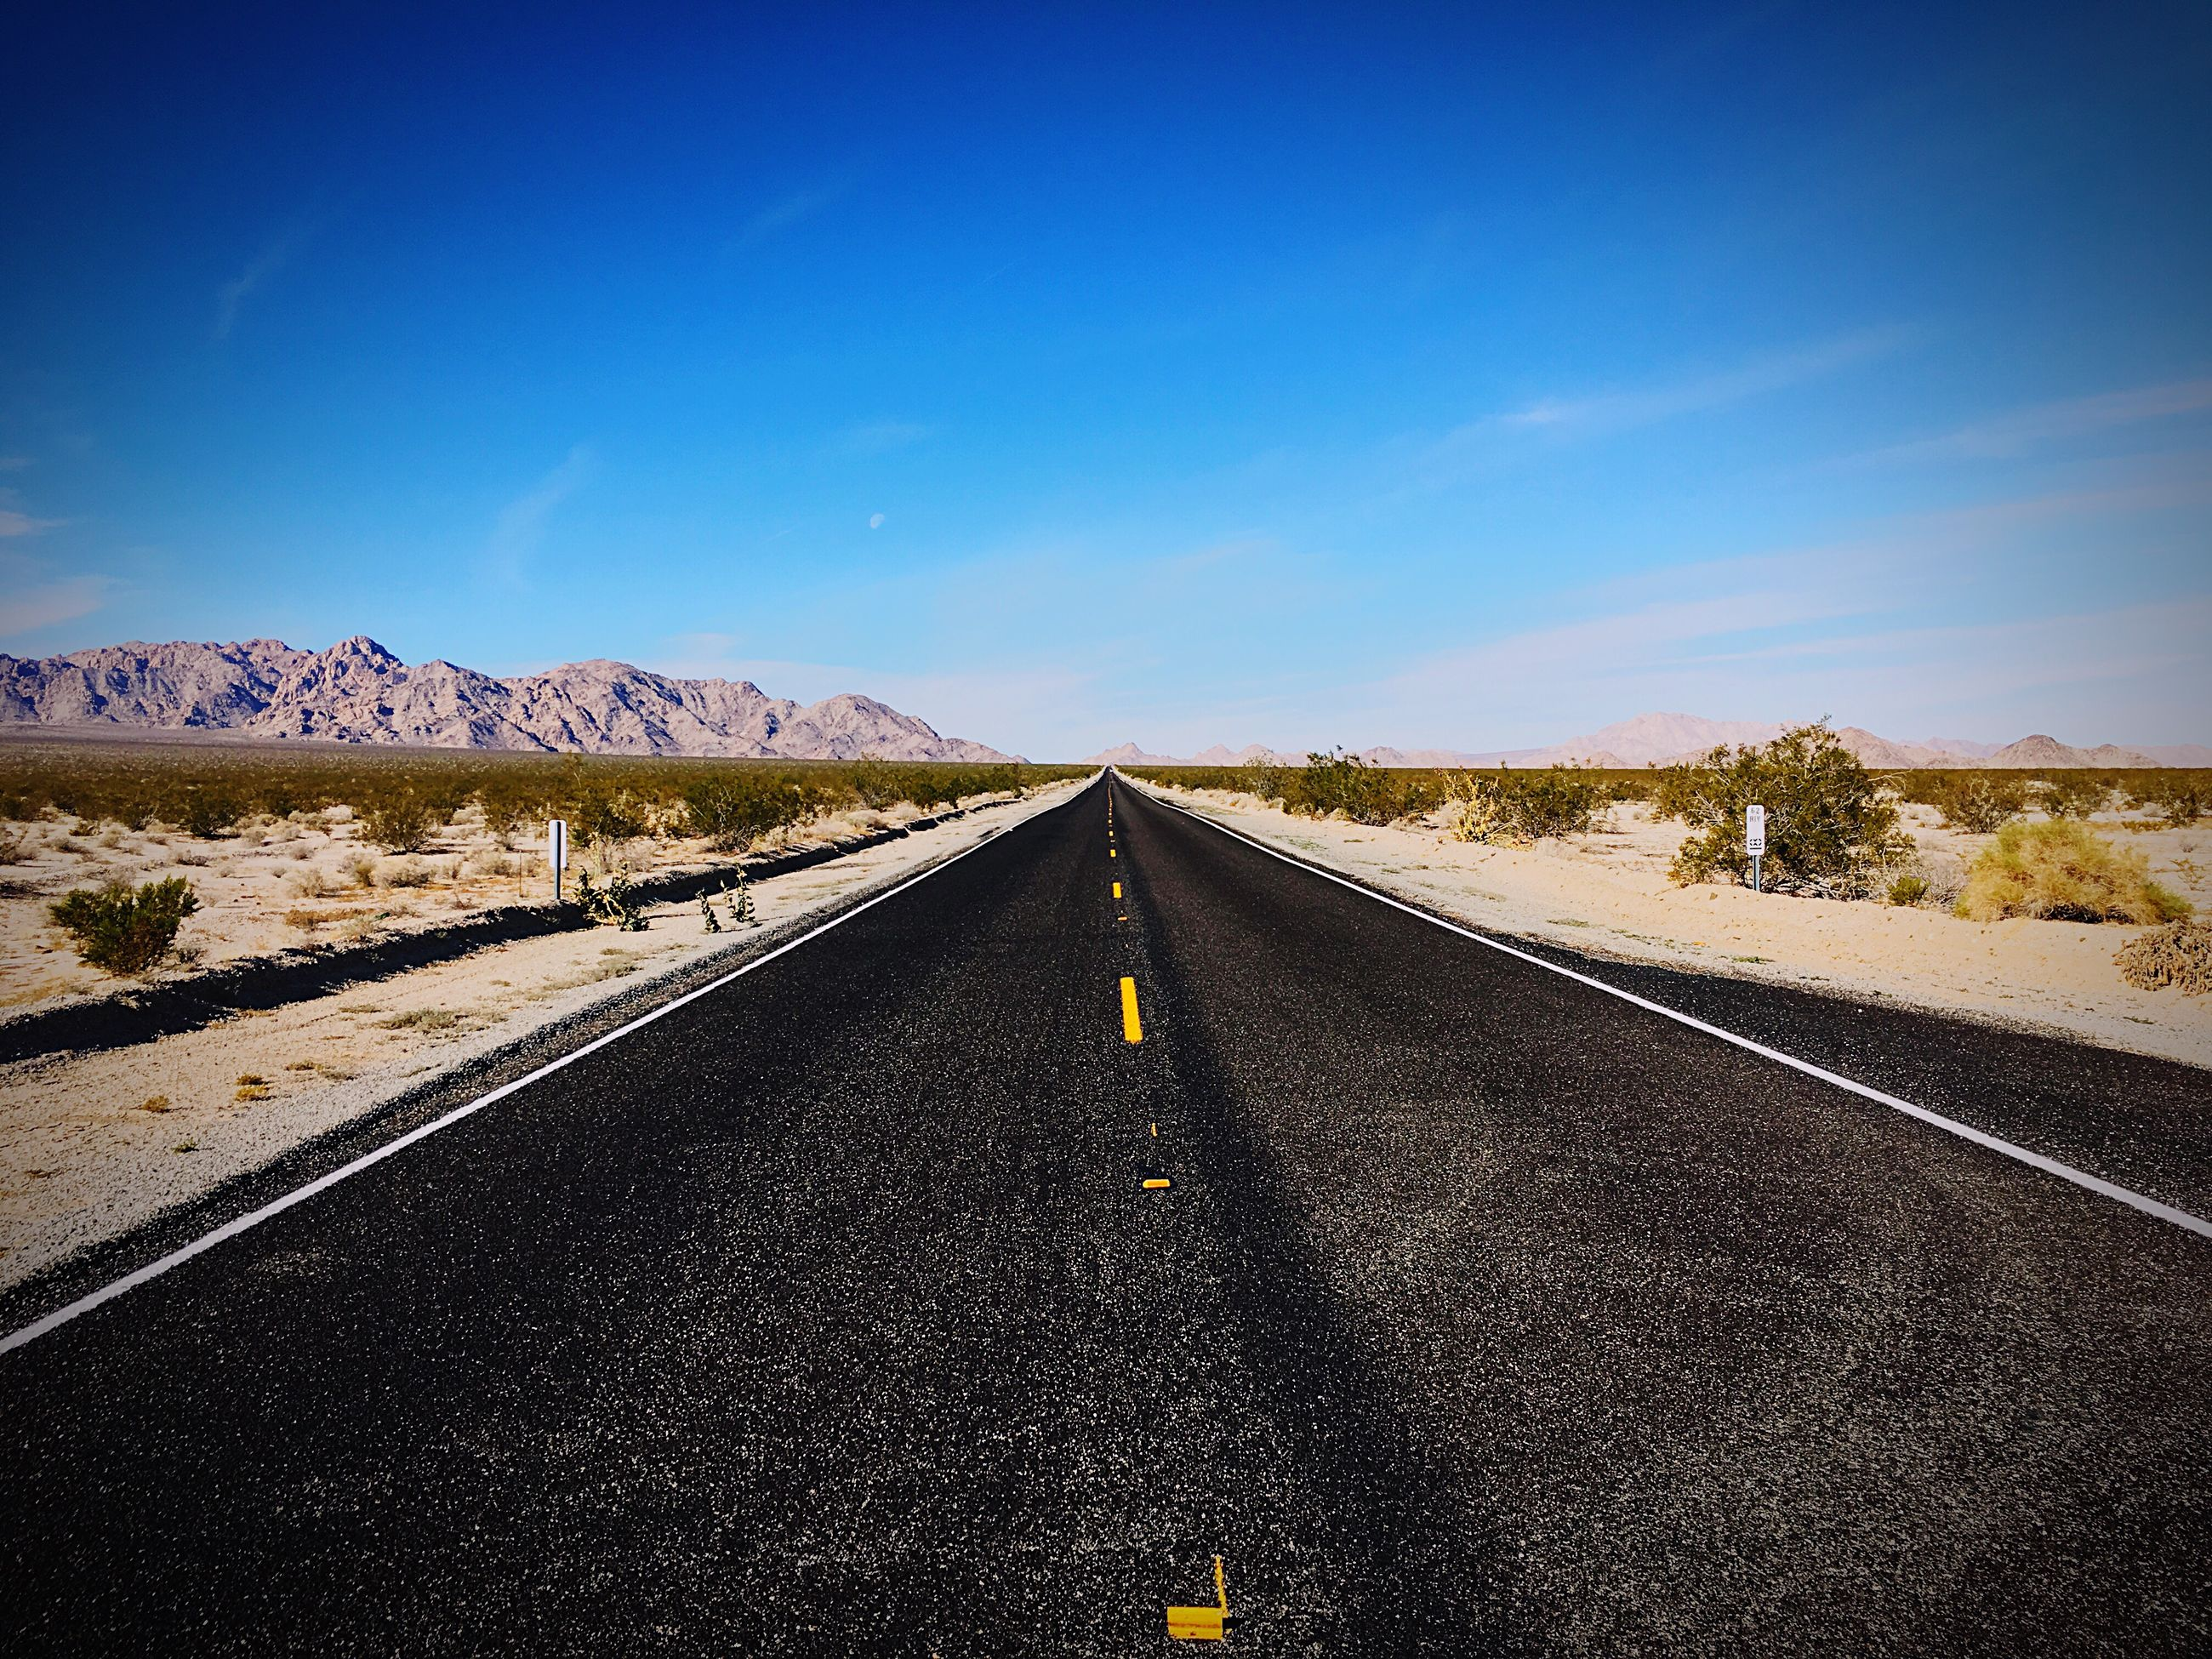 the way forward, road, vanishing point, road marking, diminishing perspective, transportation, asphalt, white line, no people, nature, landscape, outdoors, day, sky, straight, scenics, dividing line, tranquility, mountain, beauty in nature, clear sky